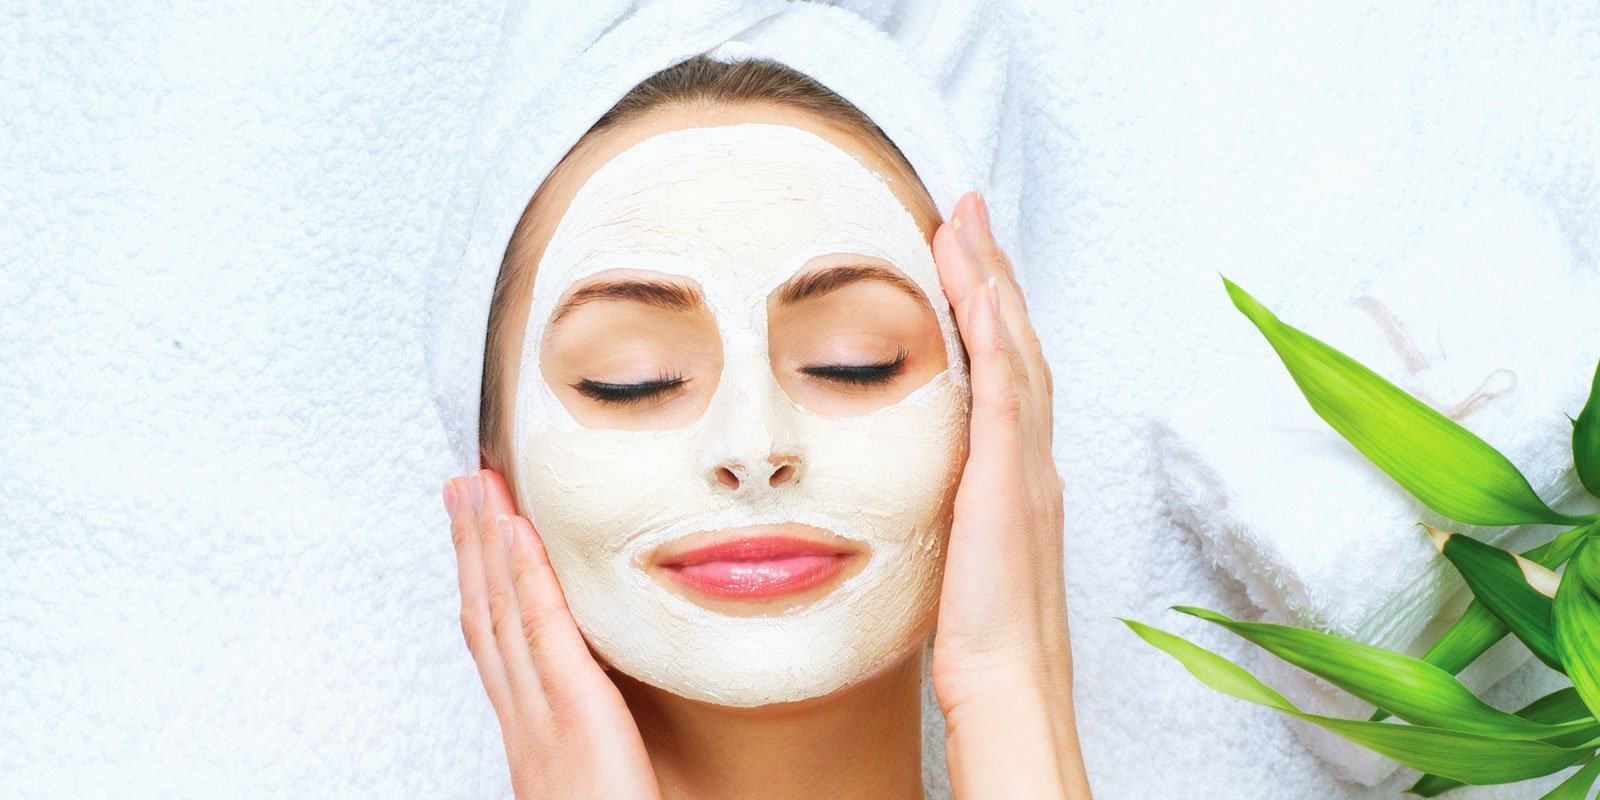 Natural Beauty DIY: 6 Coconut Oil Face Masks